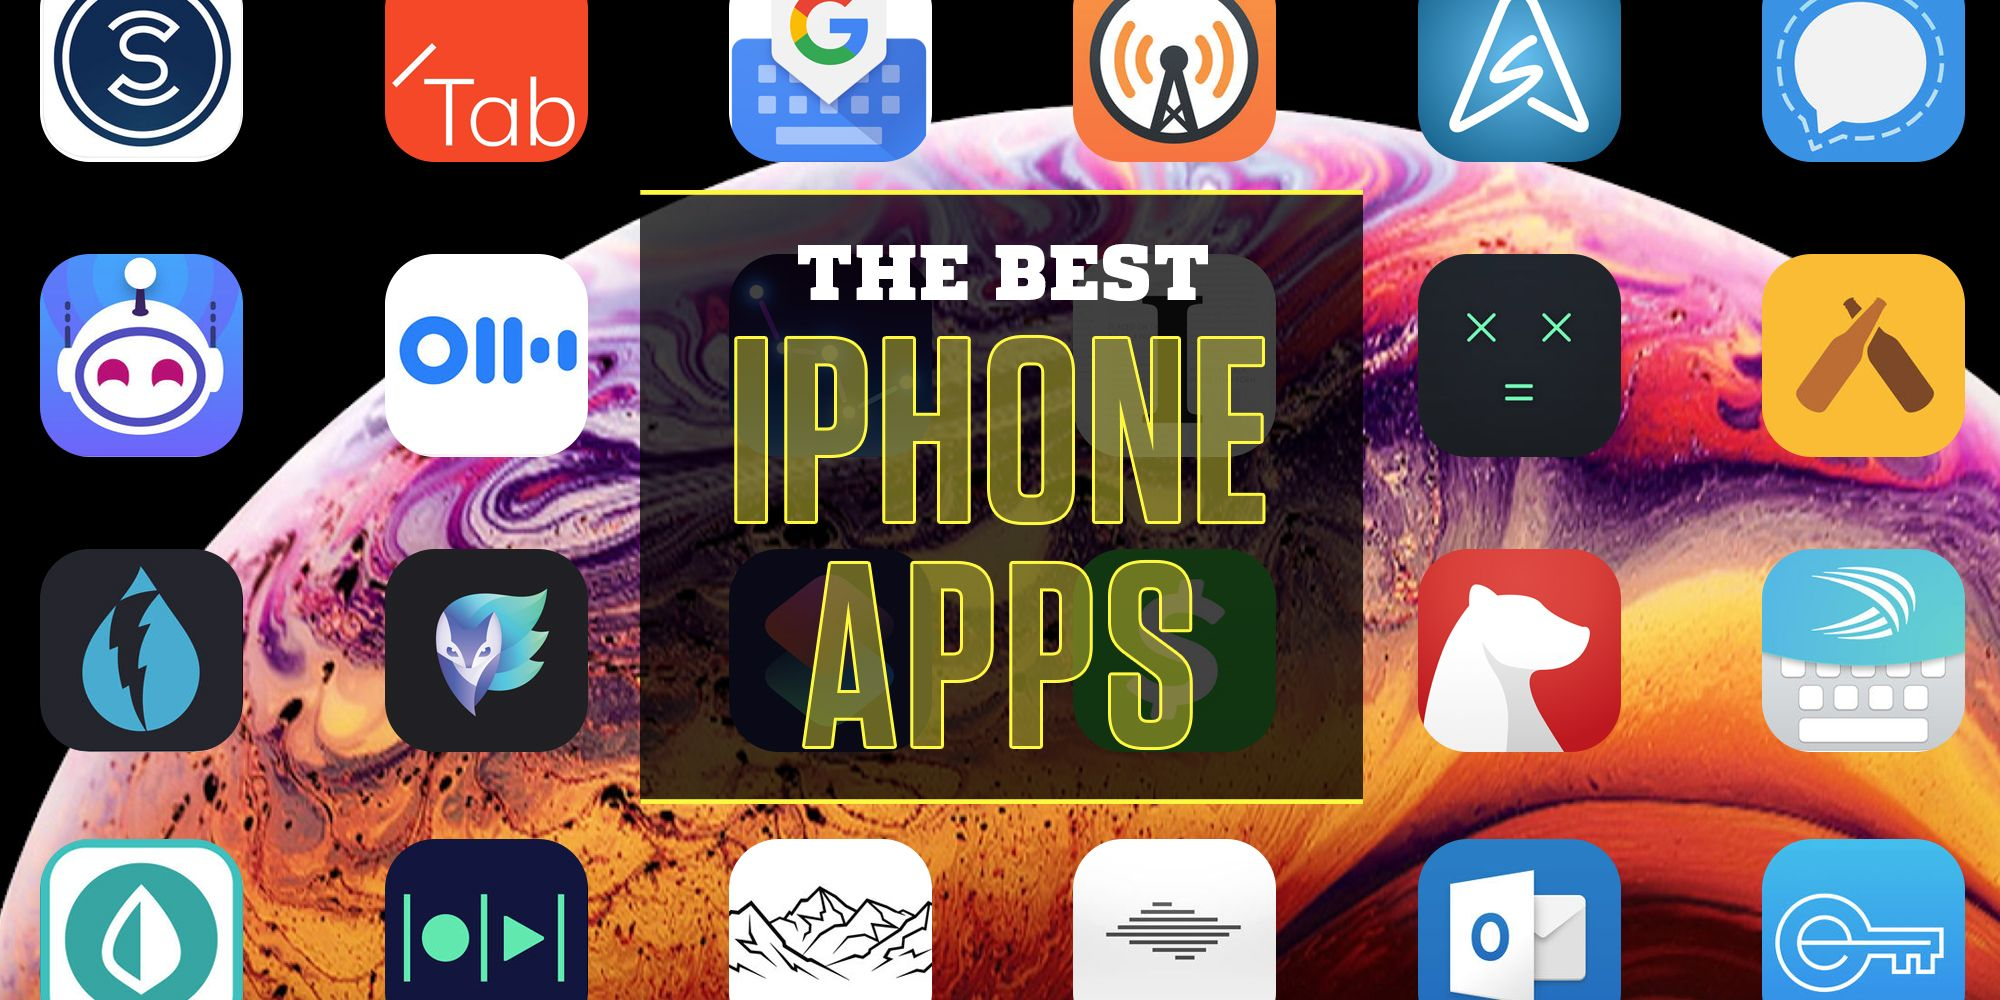 The 30 Best iPhone Apps to Download Now